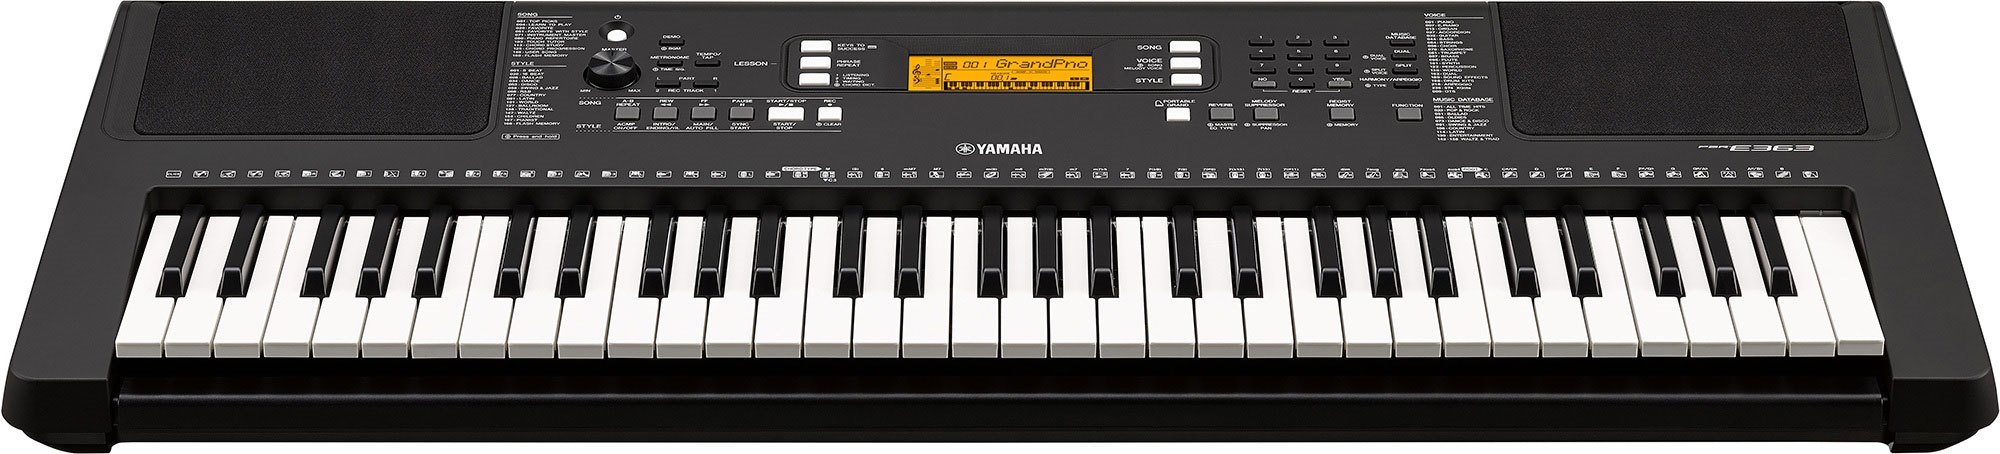 Psr E363 Overview Portable Keyboards Keyboard Instruments Yamaha Wiring Diagram Touch Sensitive Keys Allow For Expressive Dynamic Performances